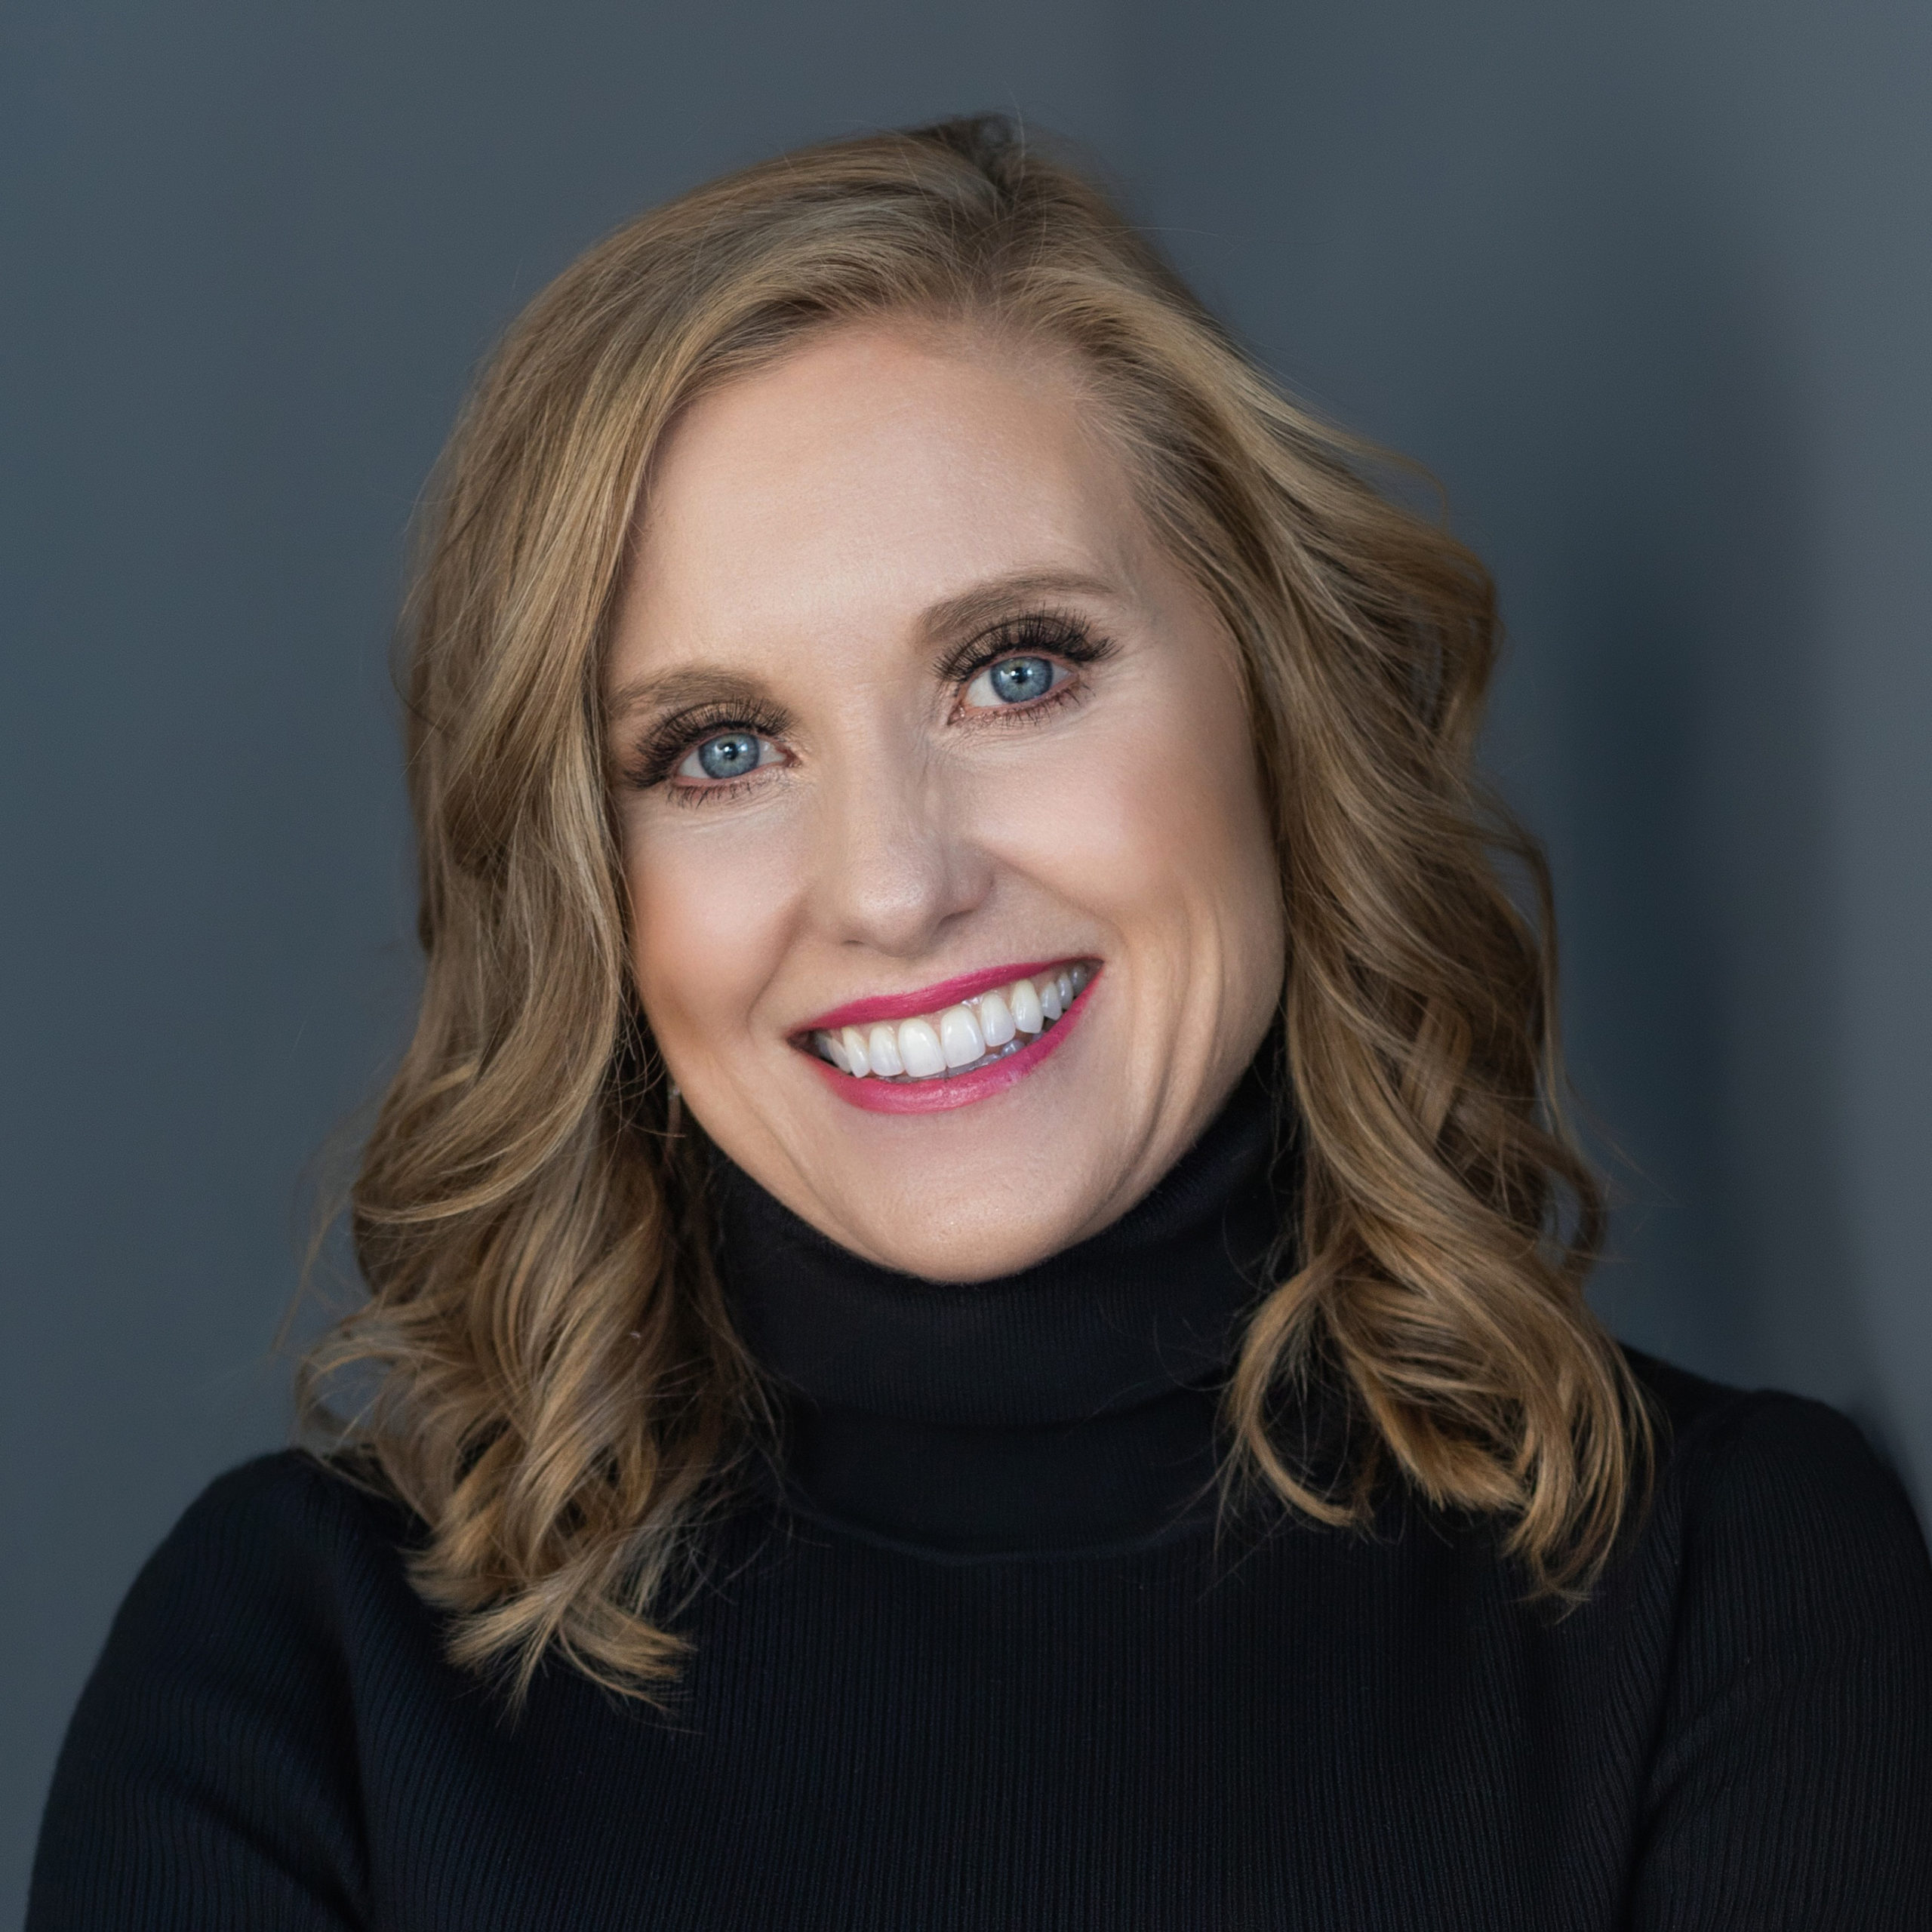 Colleen Reilly, MBA/MSM